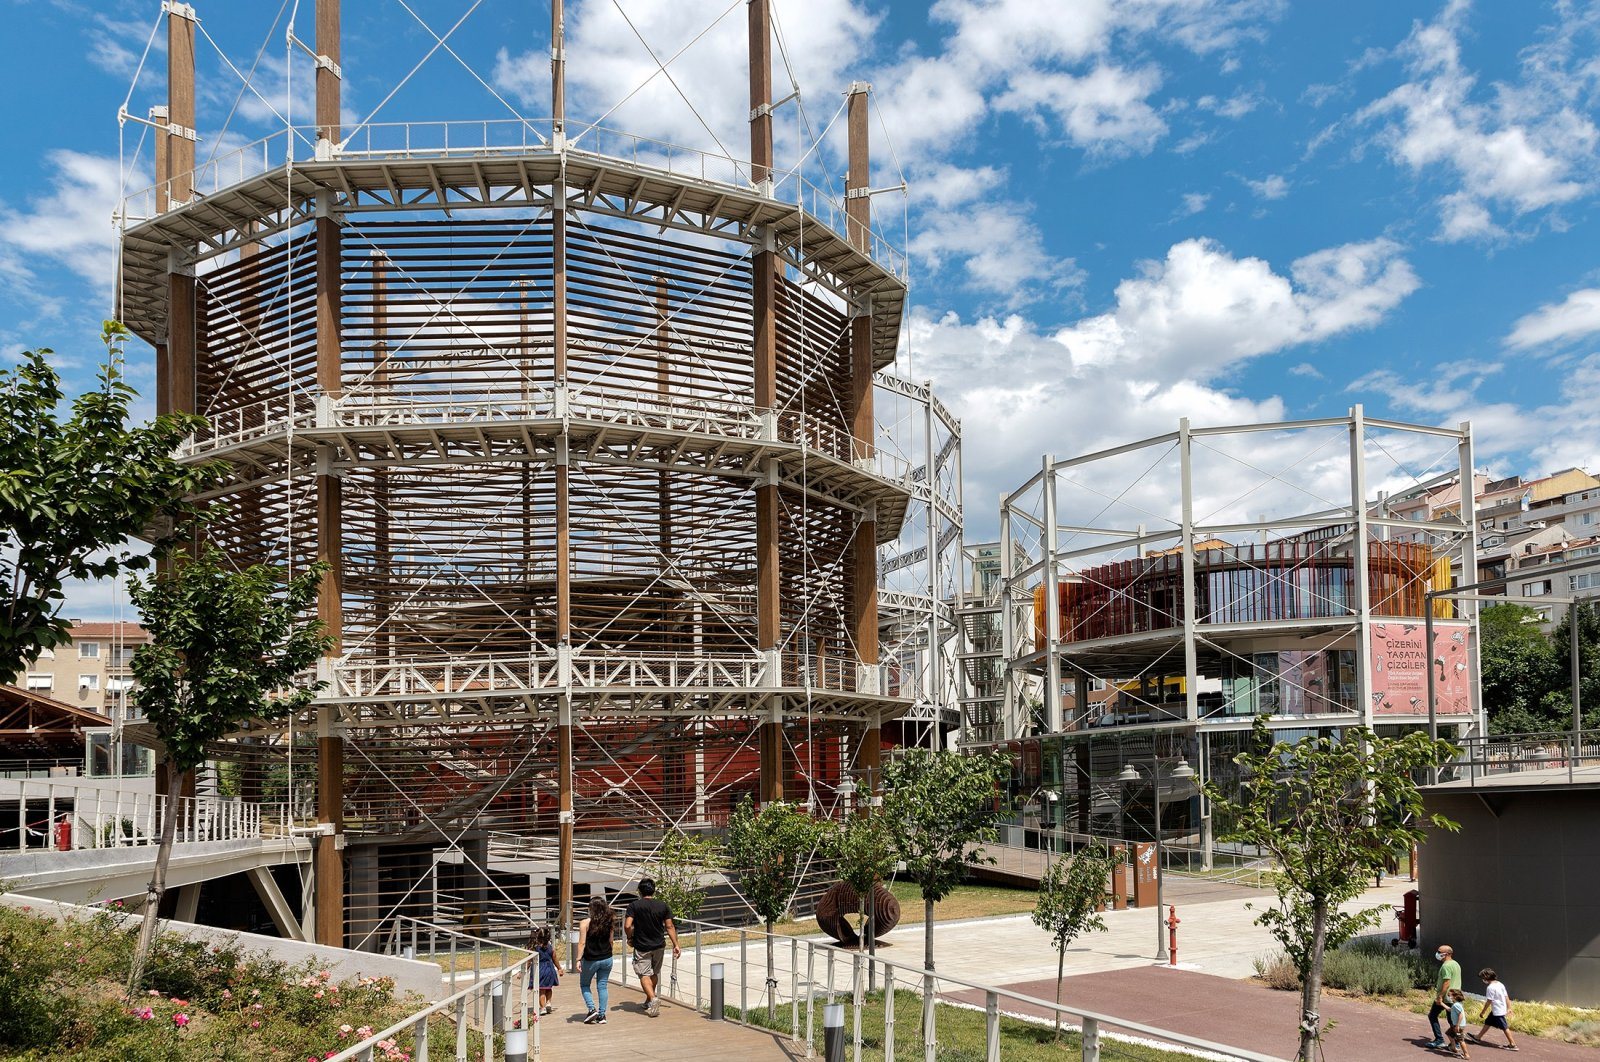 The historical Hasanpaşa Gasworks, which was built in 1892, was restored and turned into a Culture and Art Center. (Shutterstock Photo)